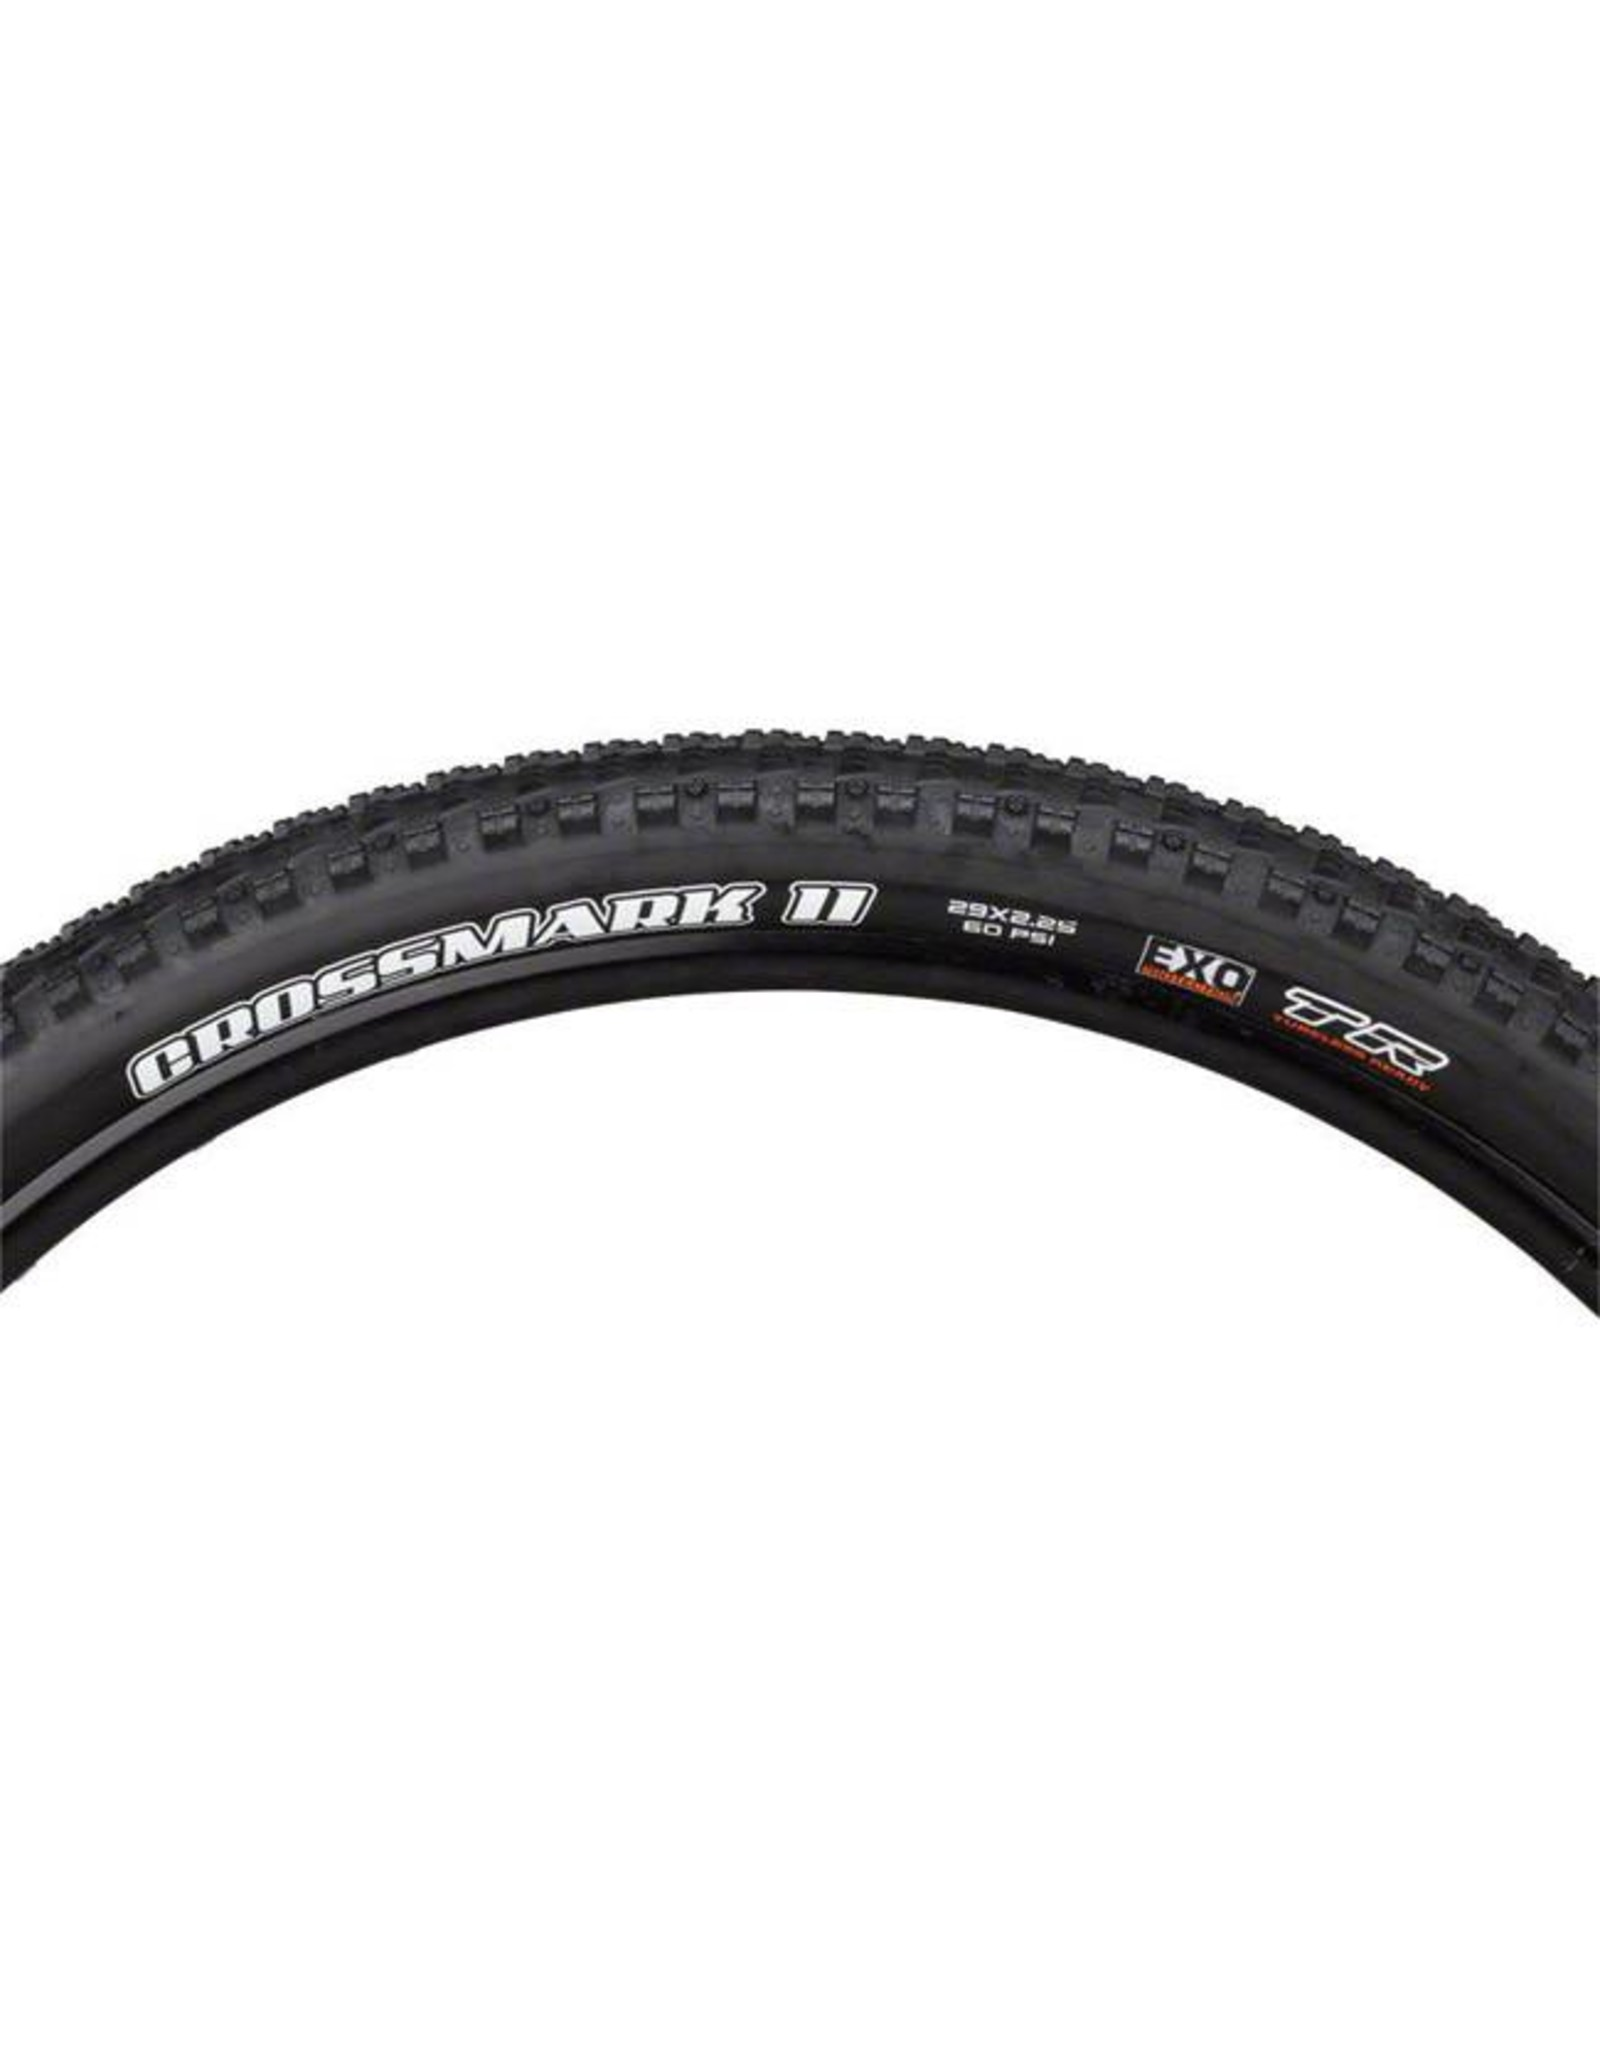 "Maxxis Maxxis Crossmark II Tire: 29 x 2.25"", Folding, 60tpi, Dual Compound, EXO, Tubeless Ready, Black"